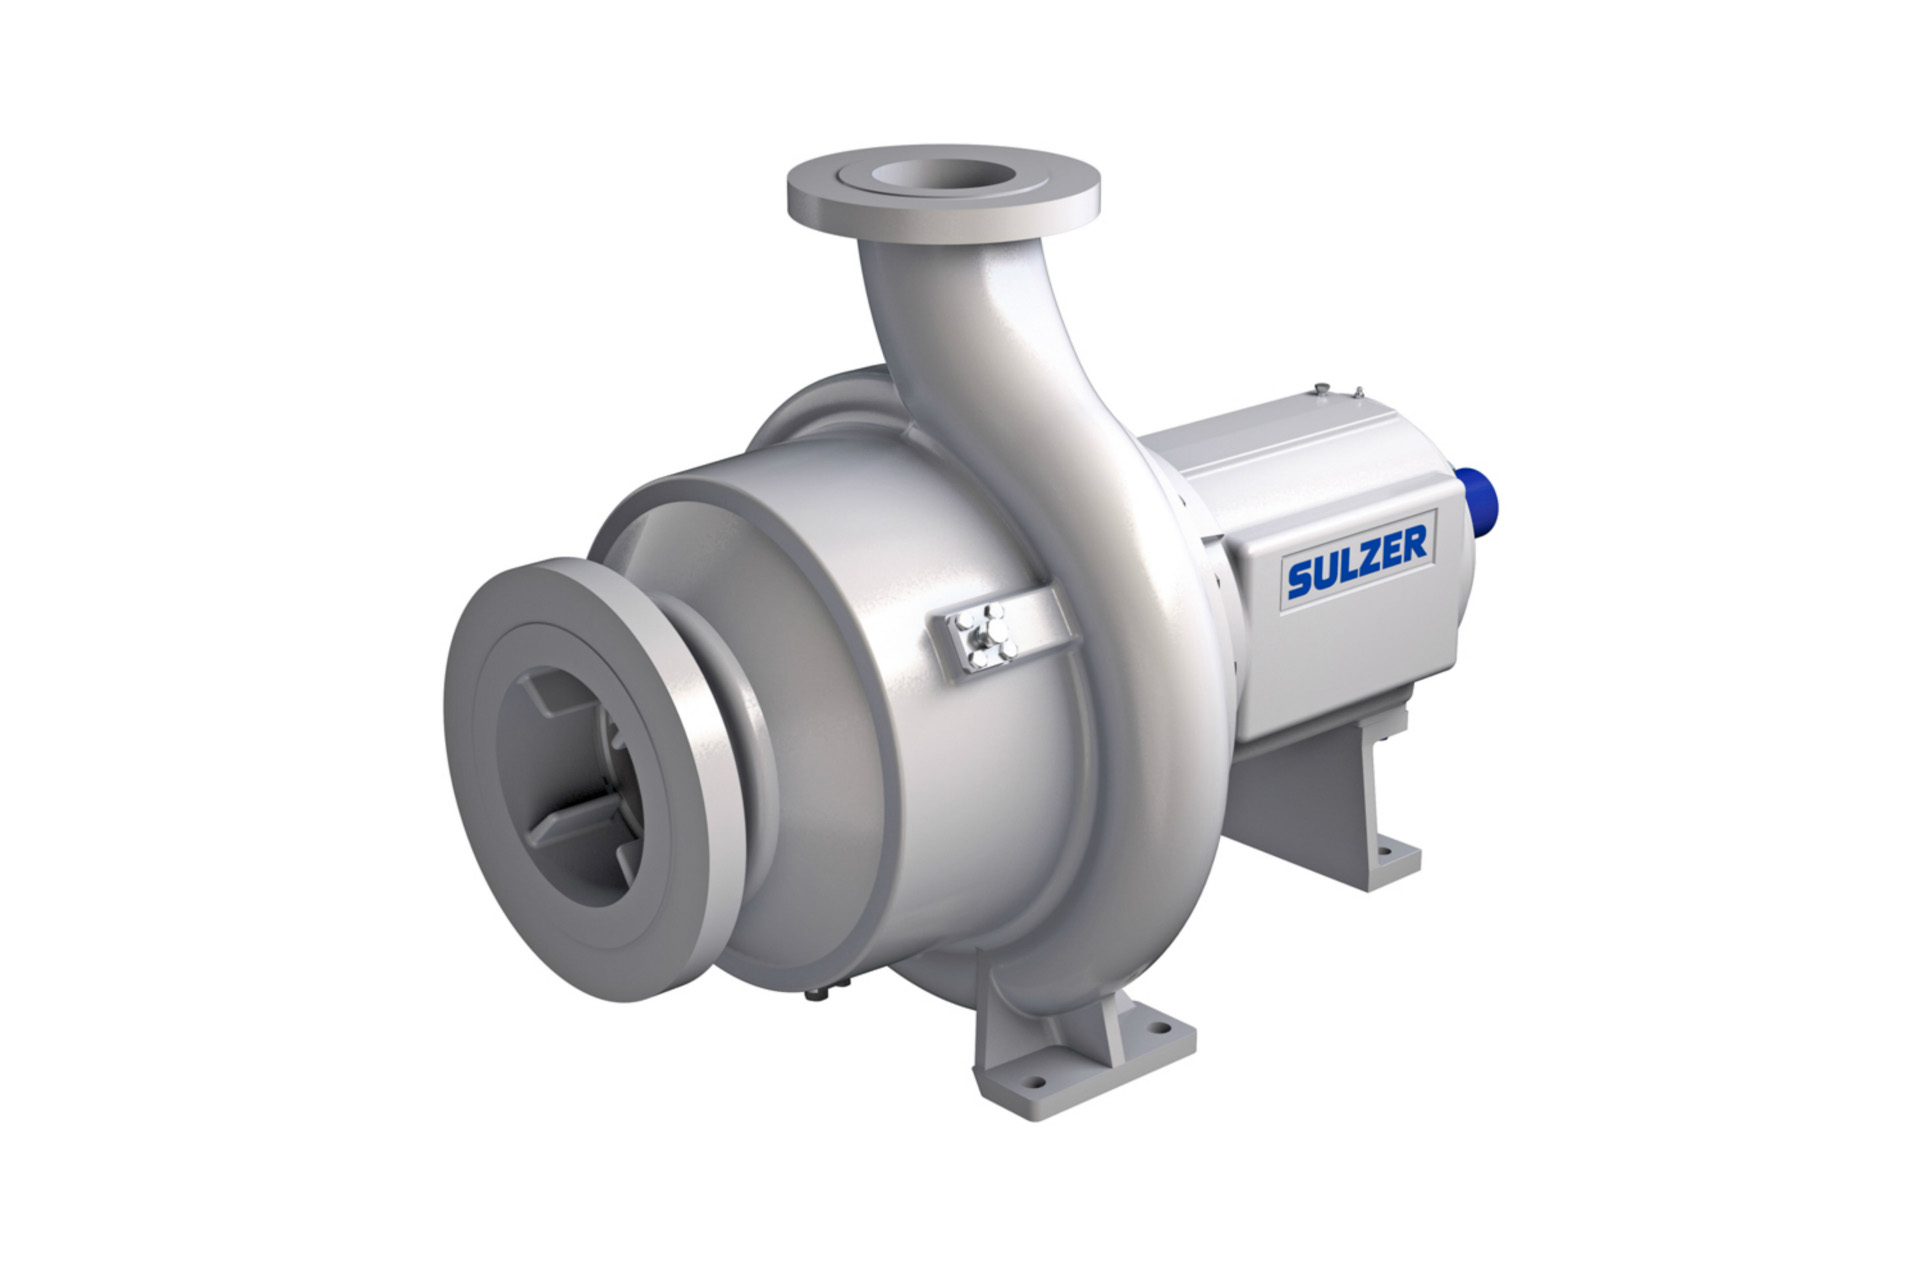 AHLSTAR LSP/T end suction two stage low speed high pressure pumps